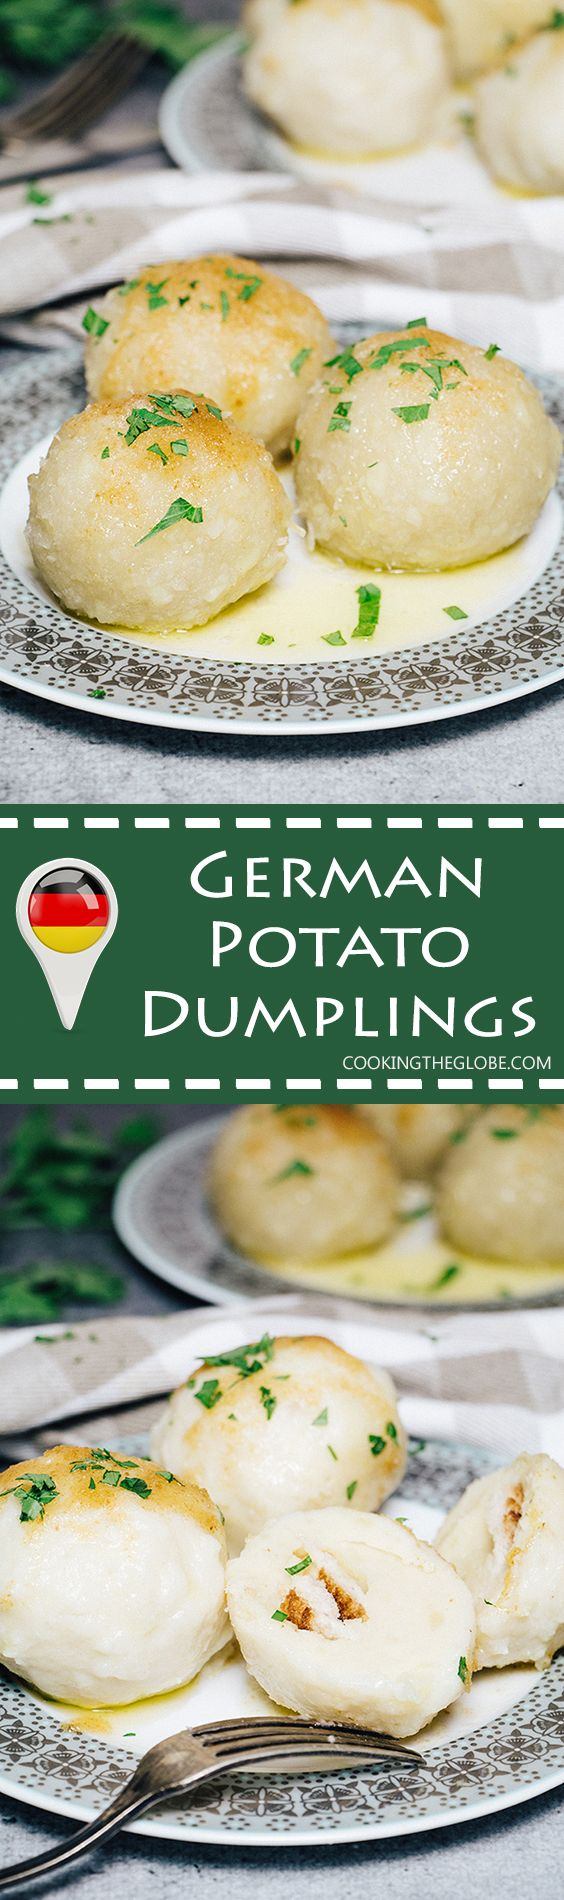 German Potato Dumplings, also known as Kartoffelkloesse, make a perfect side dish to literally anything but are also great as a standalone dish! | cookingtheglobe.com